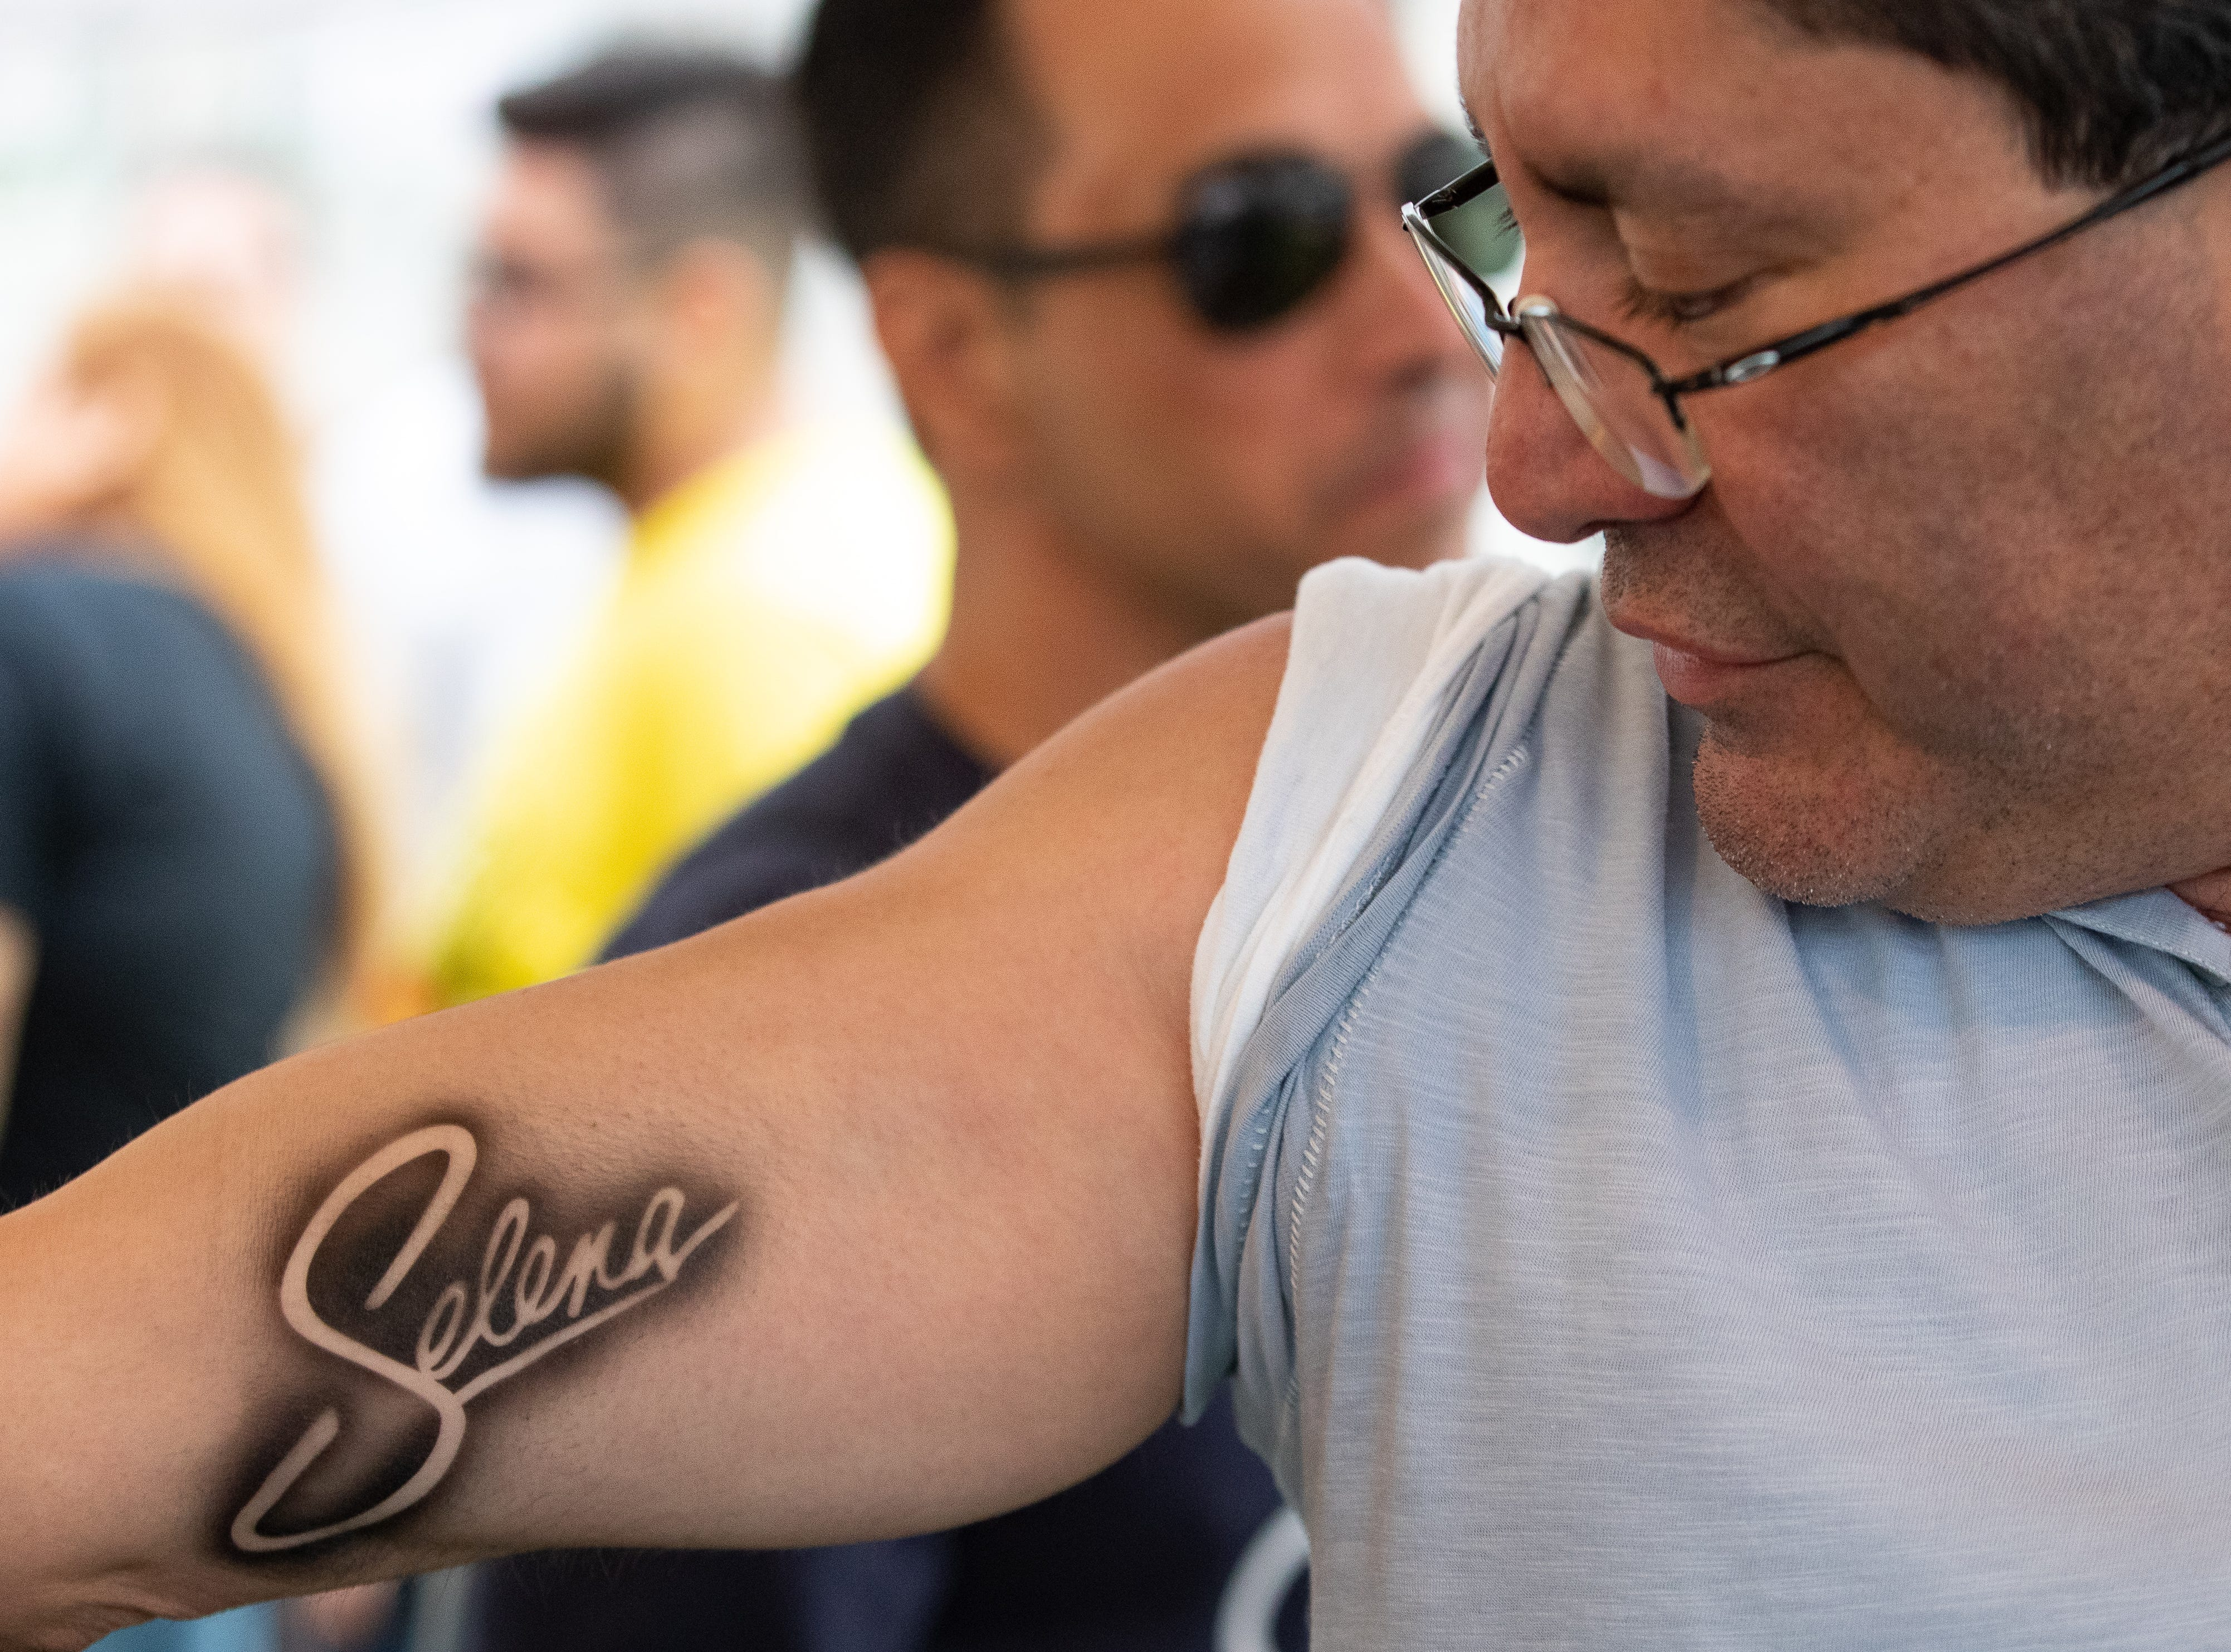 Eric Venegas of Midland, Texas has Selena's name air brushed on to his arm during the first day of Fiesta de la Flor on Friday, April 12, 2019.